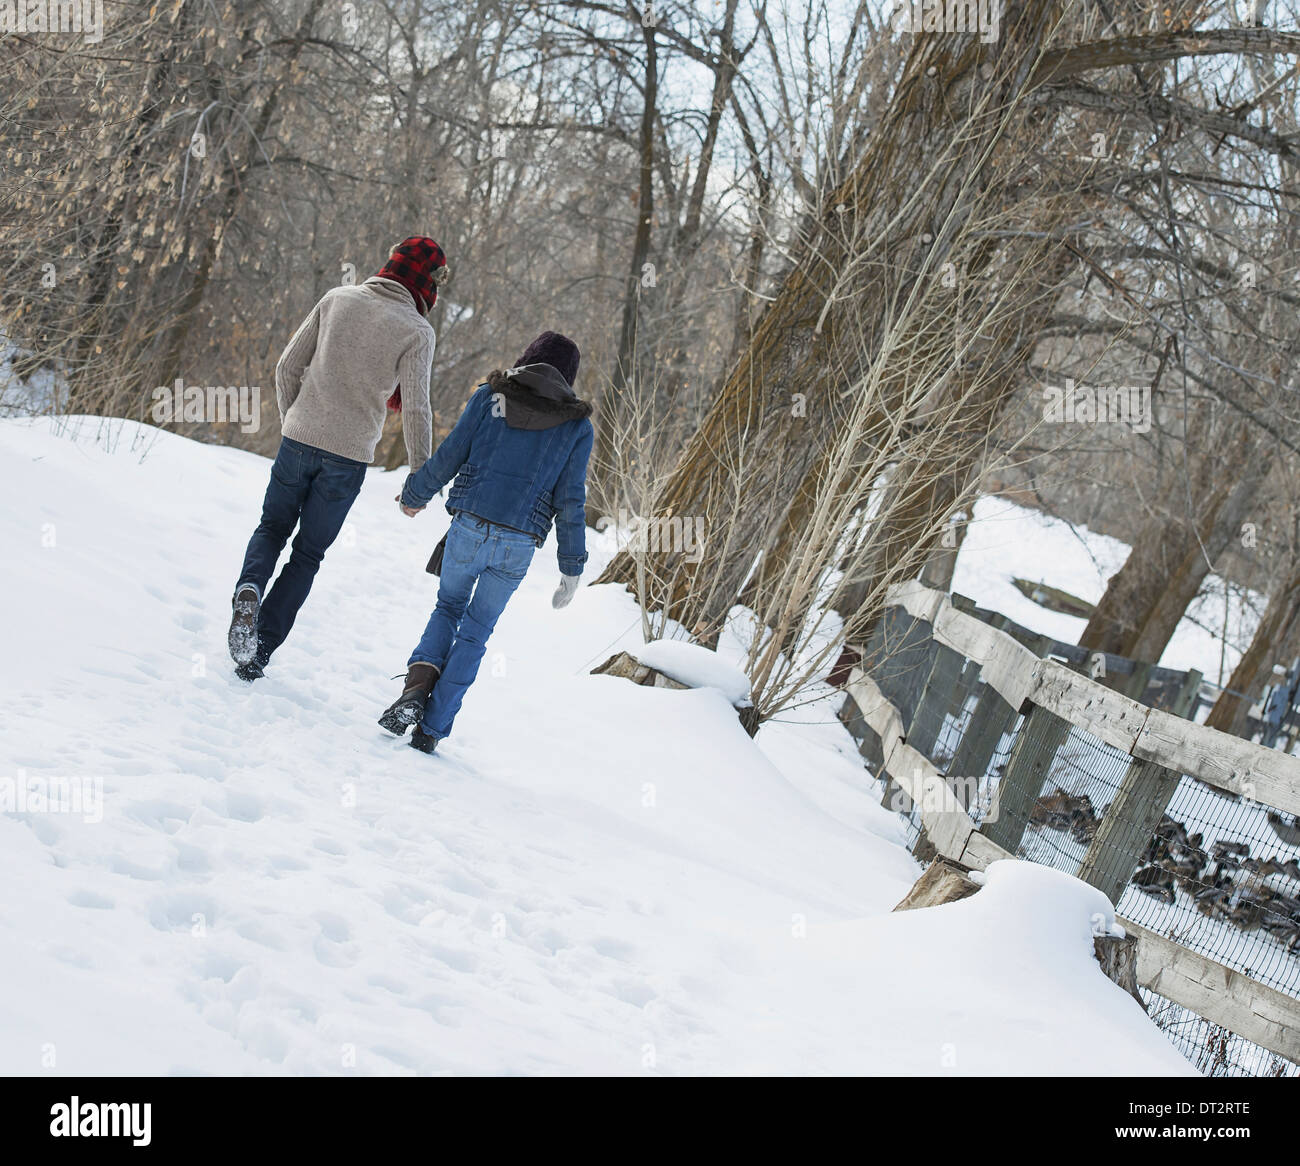 Winter scenery with snow on the ground A couple walking hand in hand along a path - Stock Image